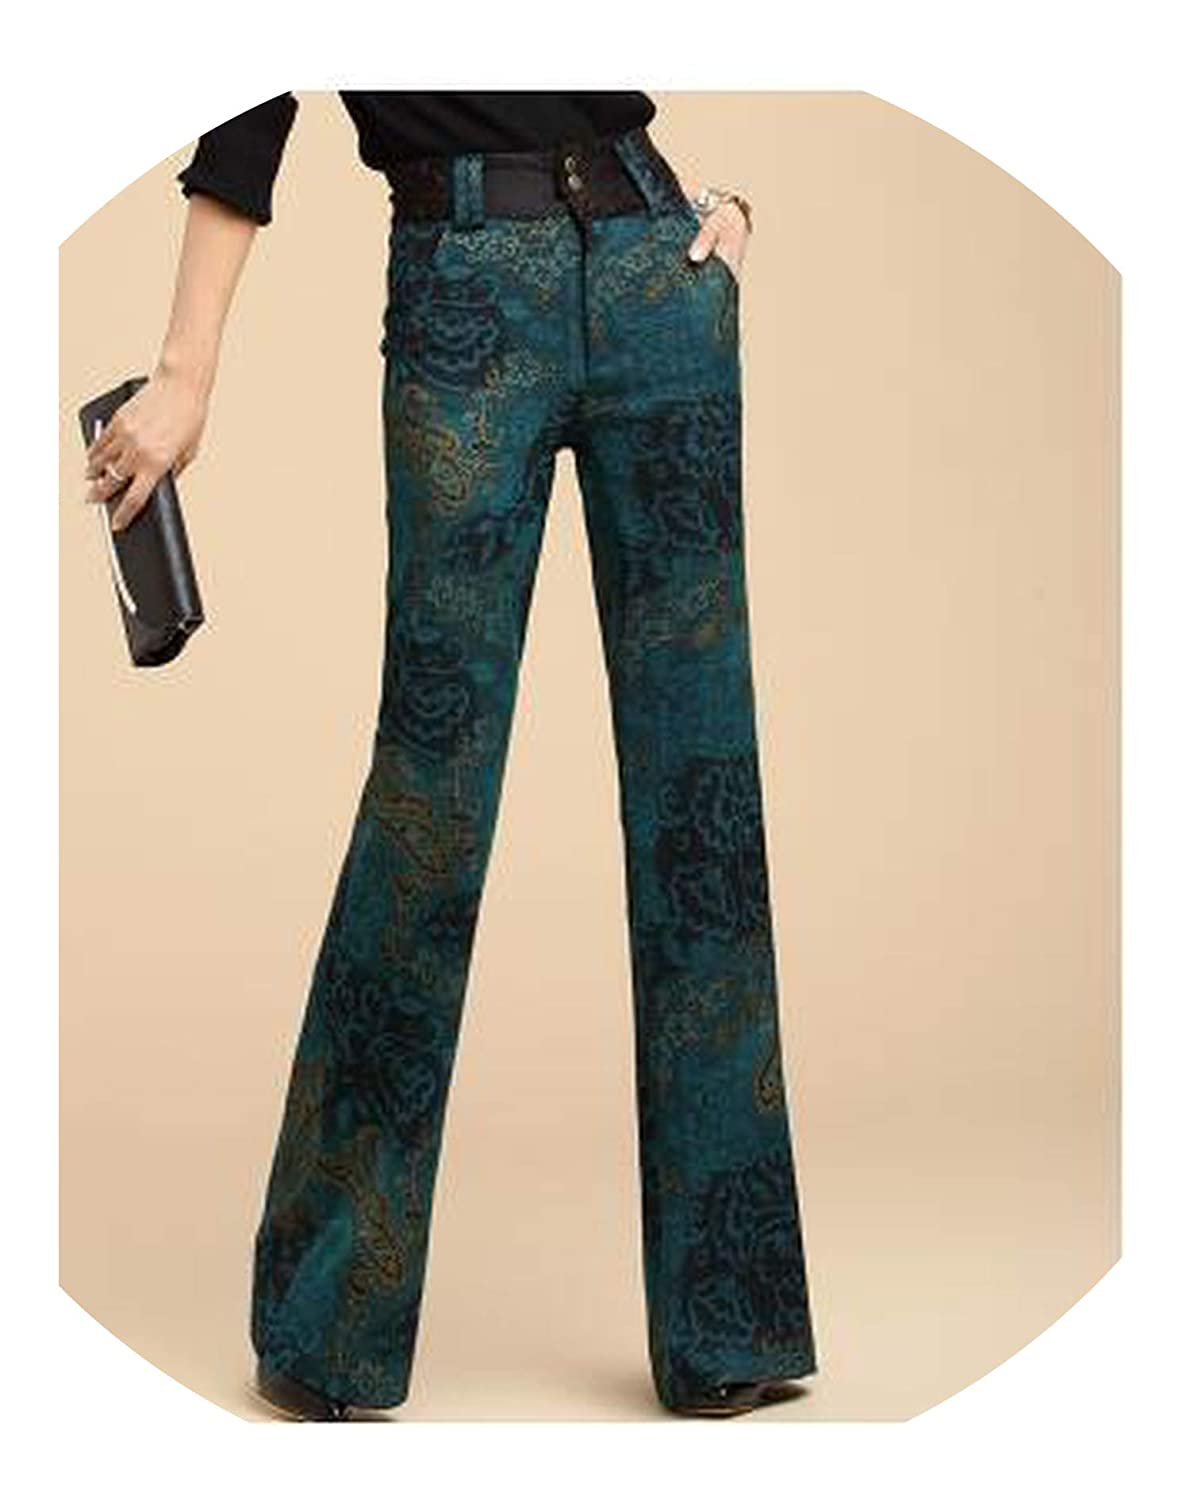 Green It's a big deal Winter Women's Thick Warm Pants Autumn Printed Flare Leg Pants Slim High Waisted Velvet Trousers